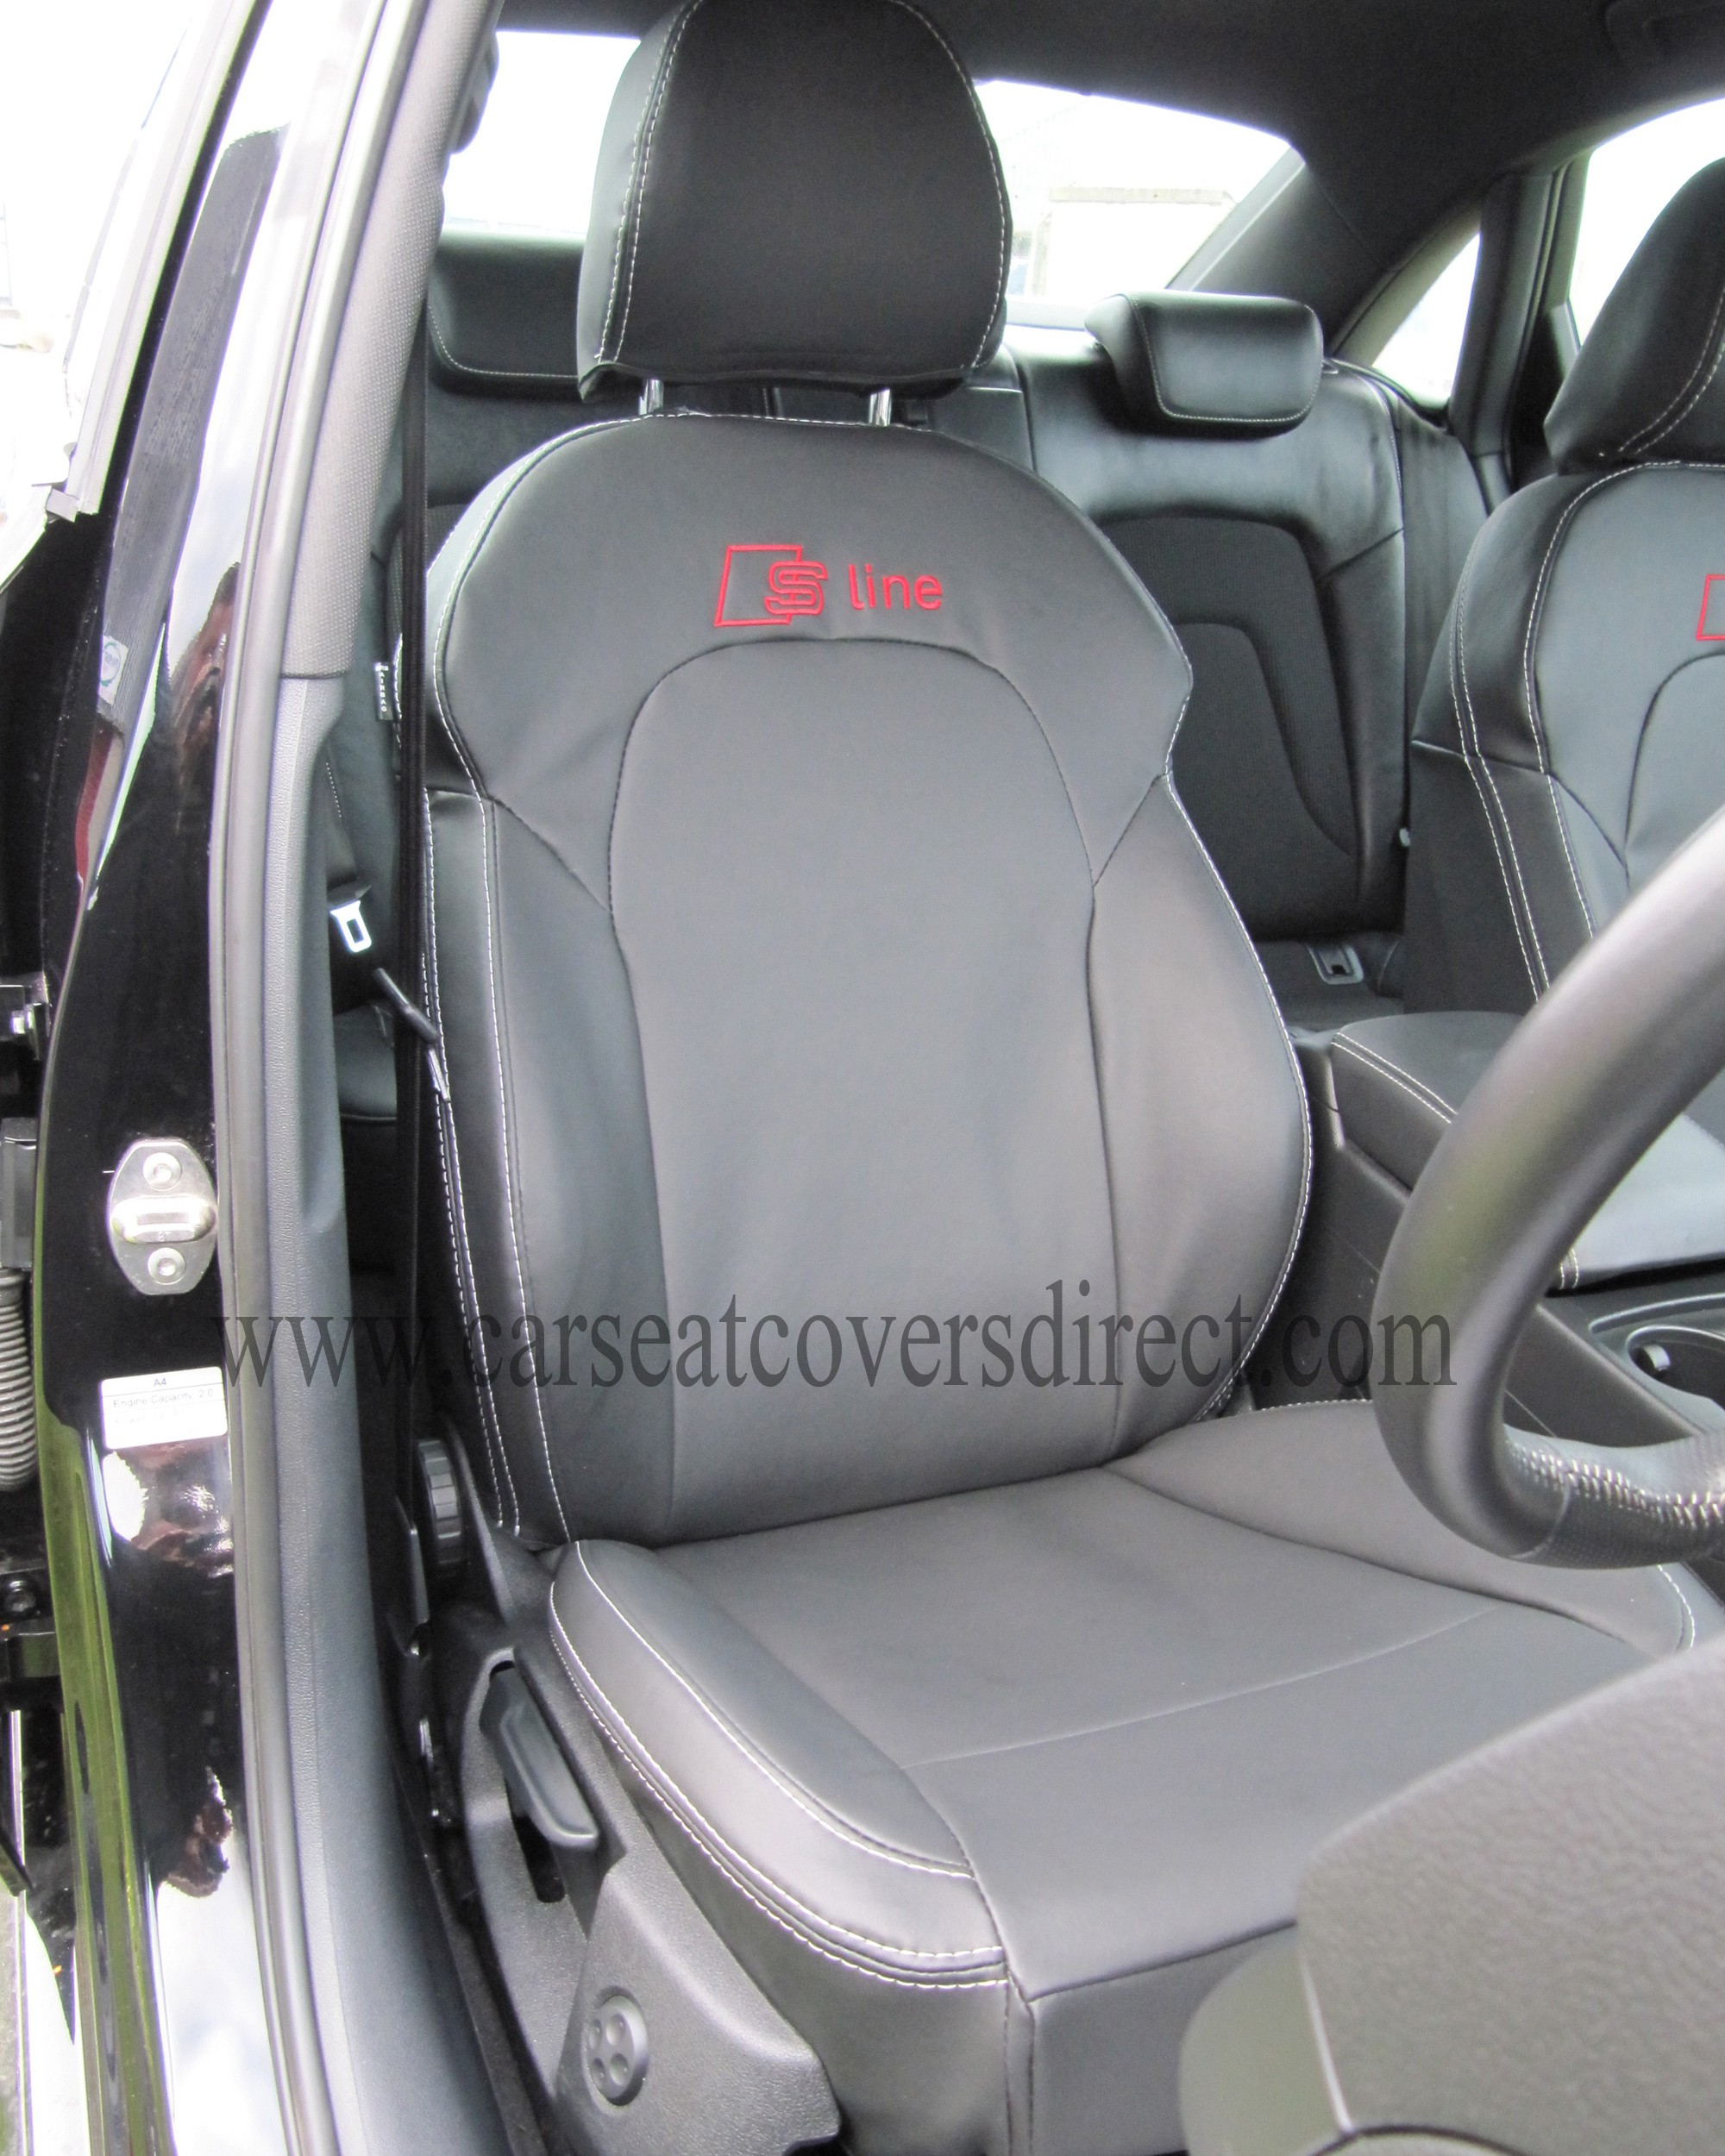 audi a4 seat covers black with s line logo car seat. Black Bedroom Furniture Sets. Home Design Ideas